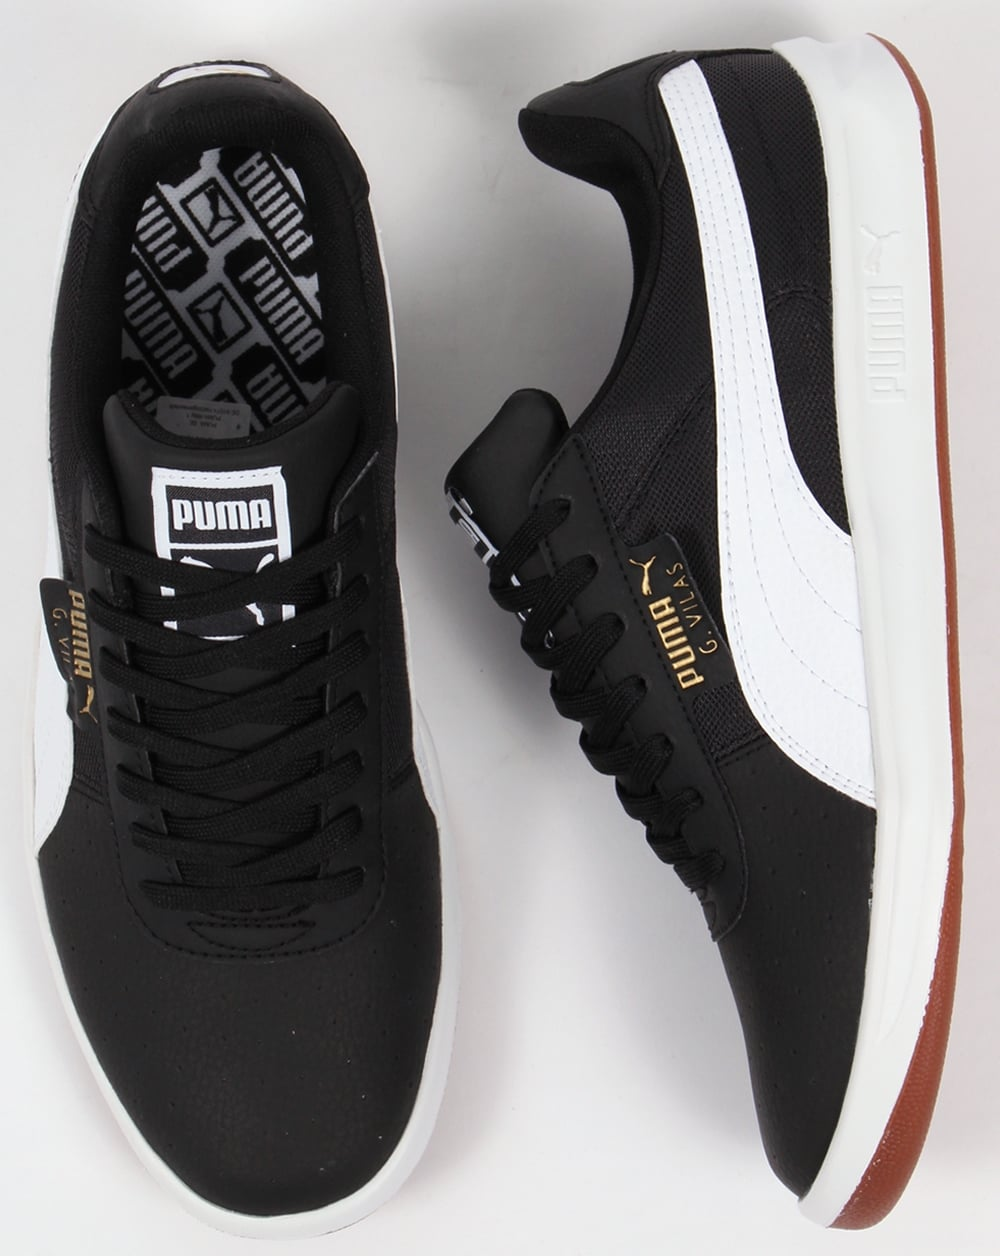 41ad2f7db31c puma g vilas for sale cheap   OFF64% Discounted